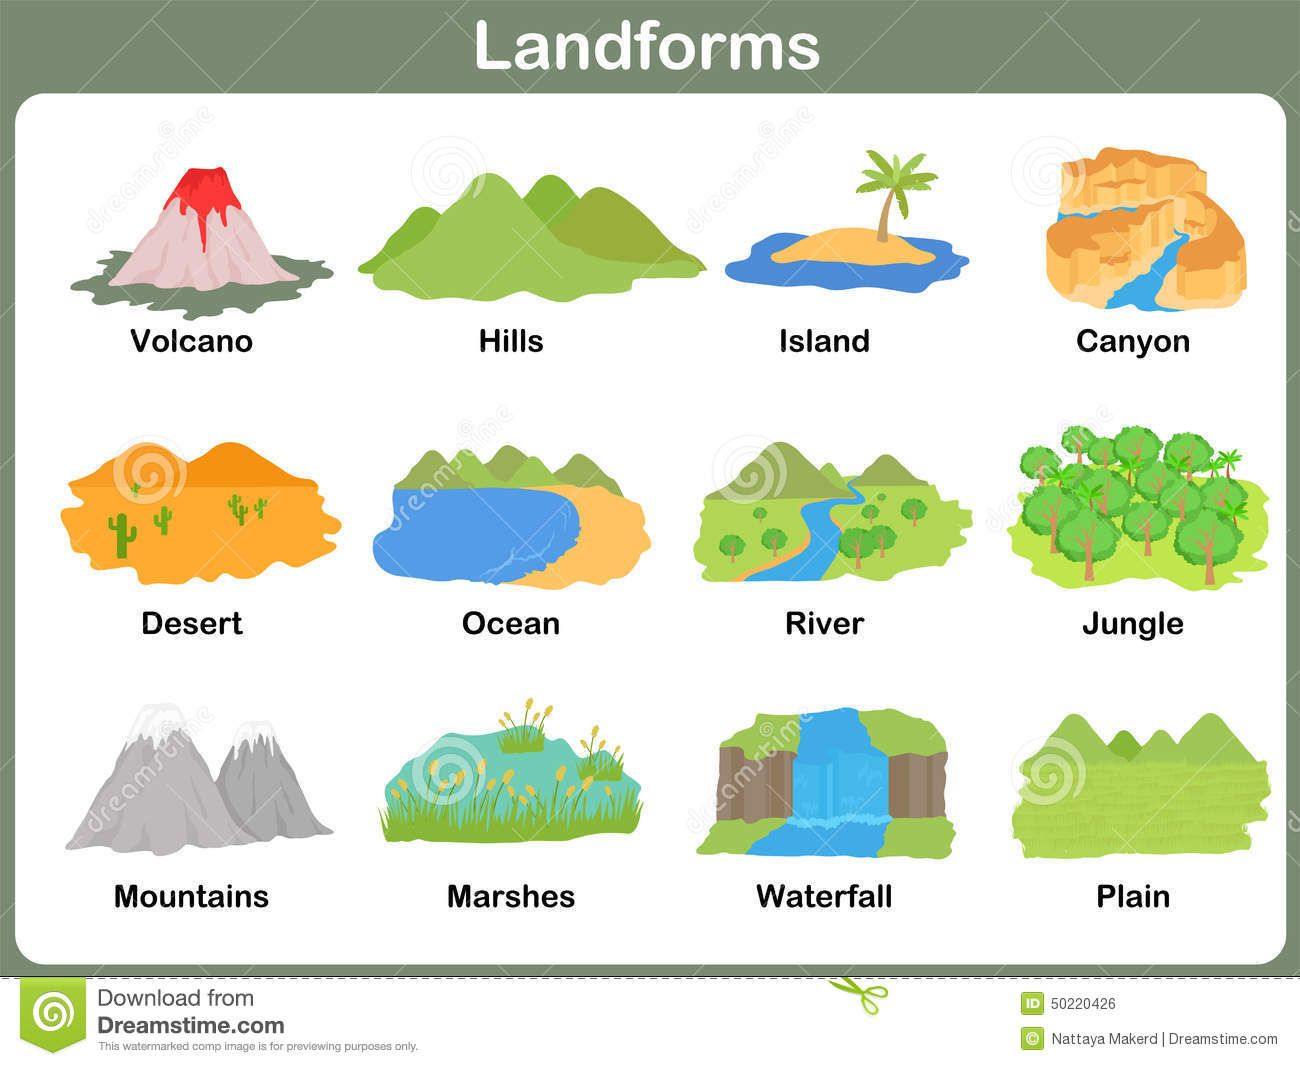 Worksheets Landforms Worksheets landforms for children google search social studies pinterest search